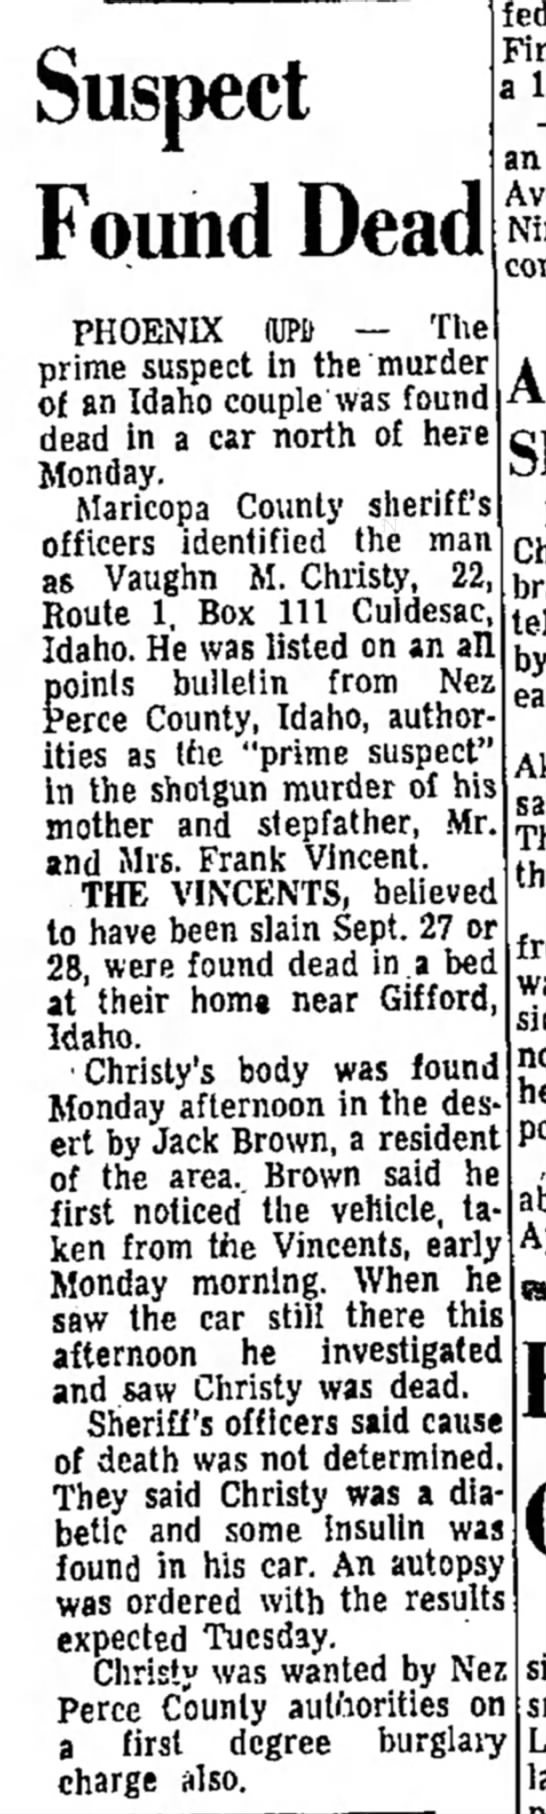 Idaho Free Press, Nampa, ID, 5 Oct 1965 pg 1 col. 1 -